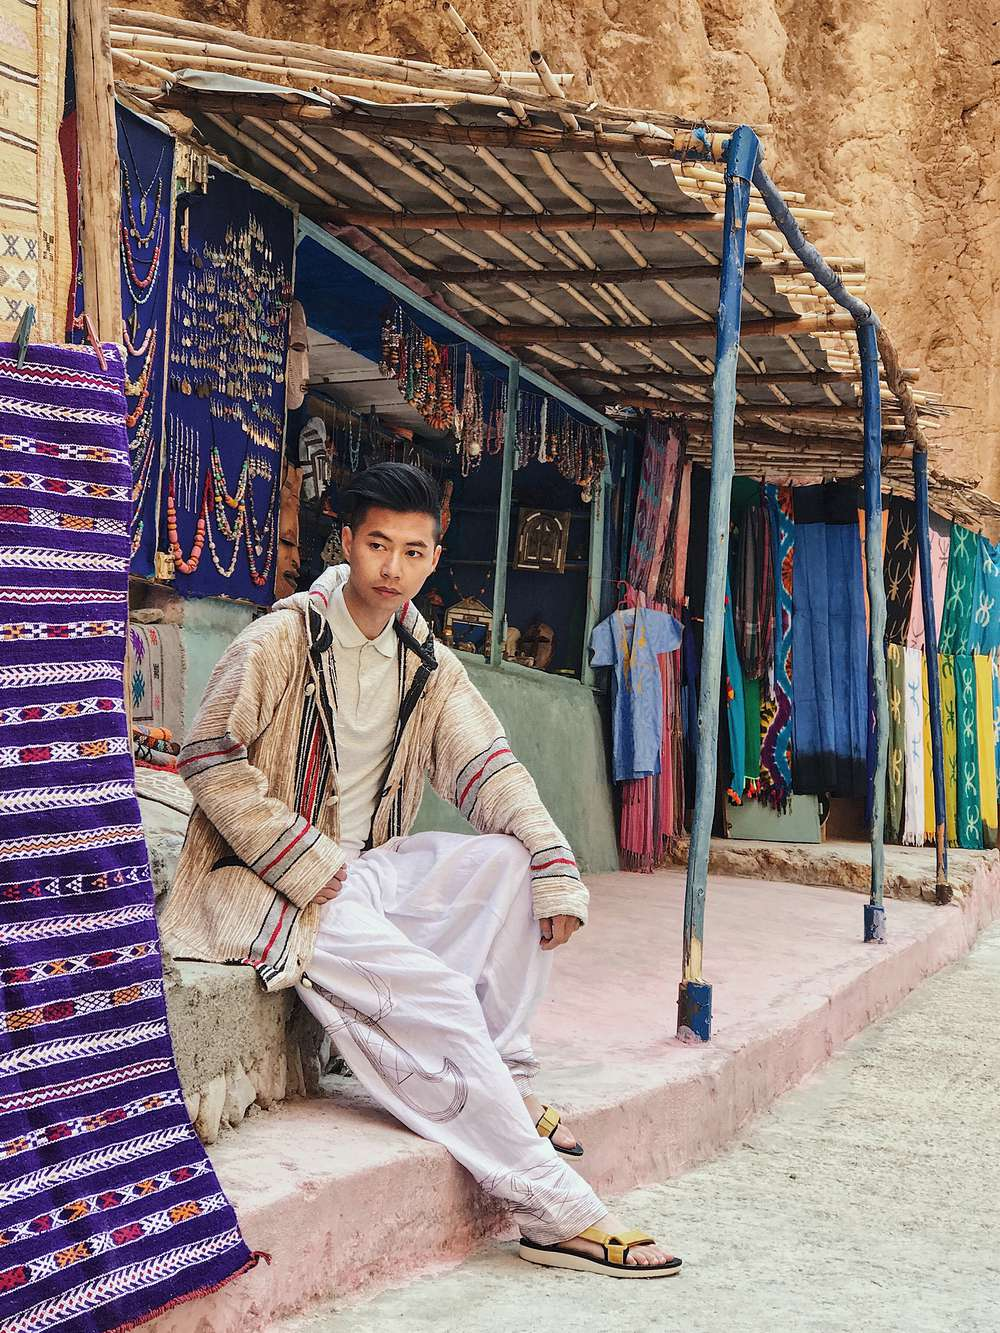 Tommy Lei sitting in marketplace in Morocco